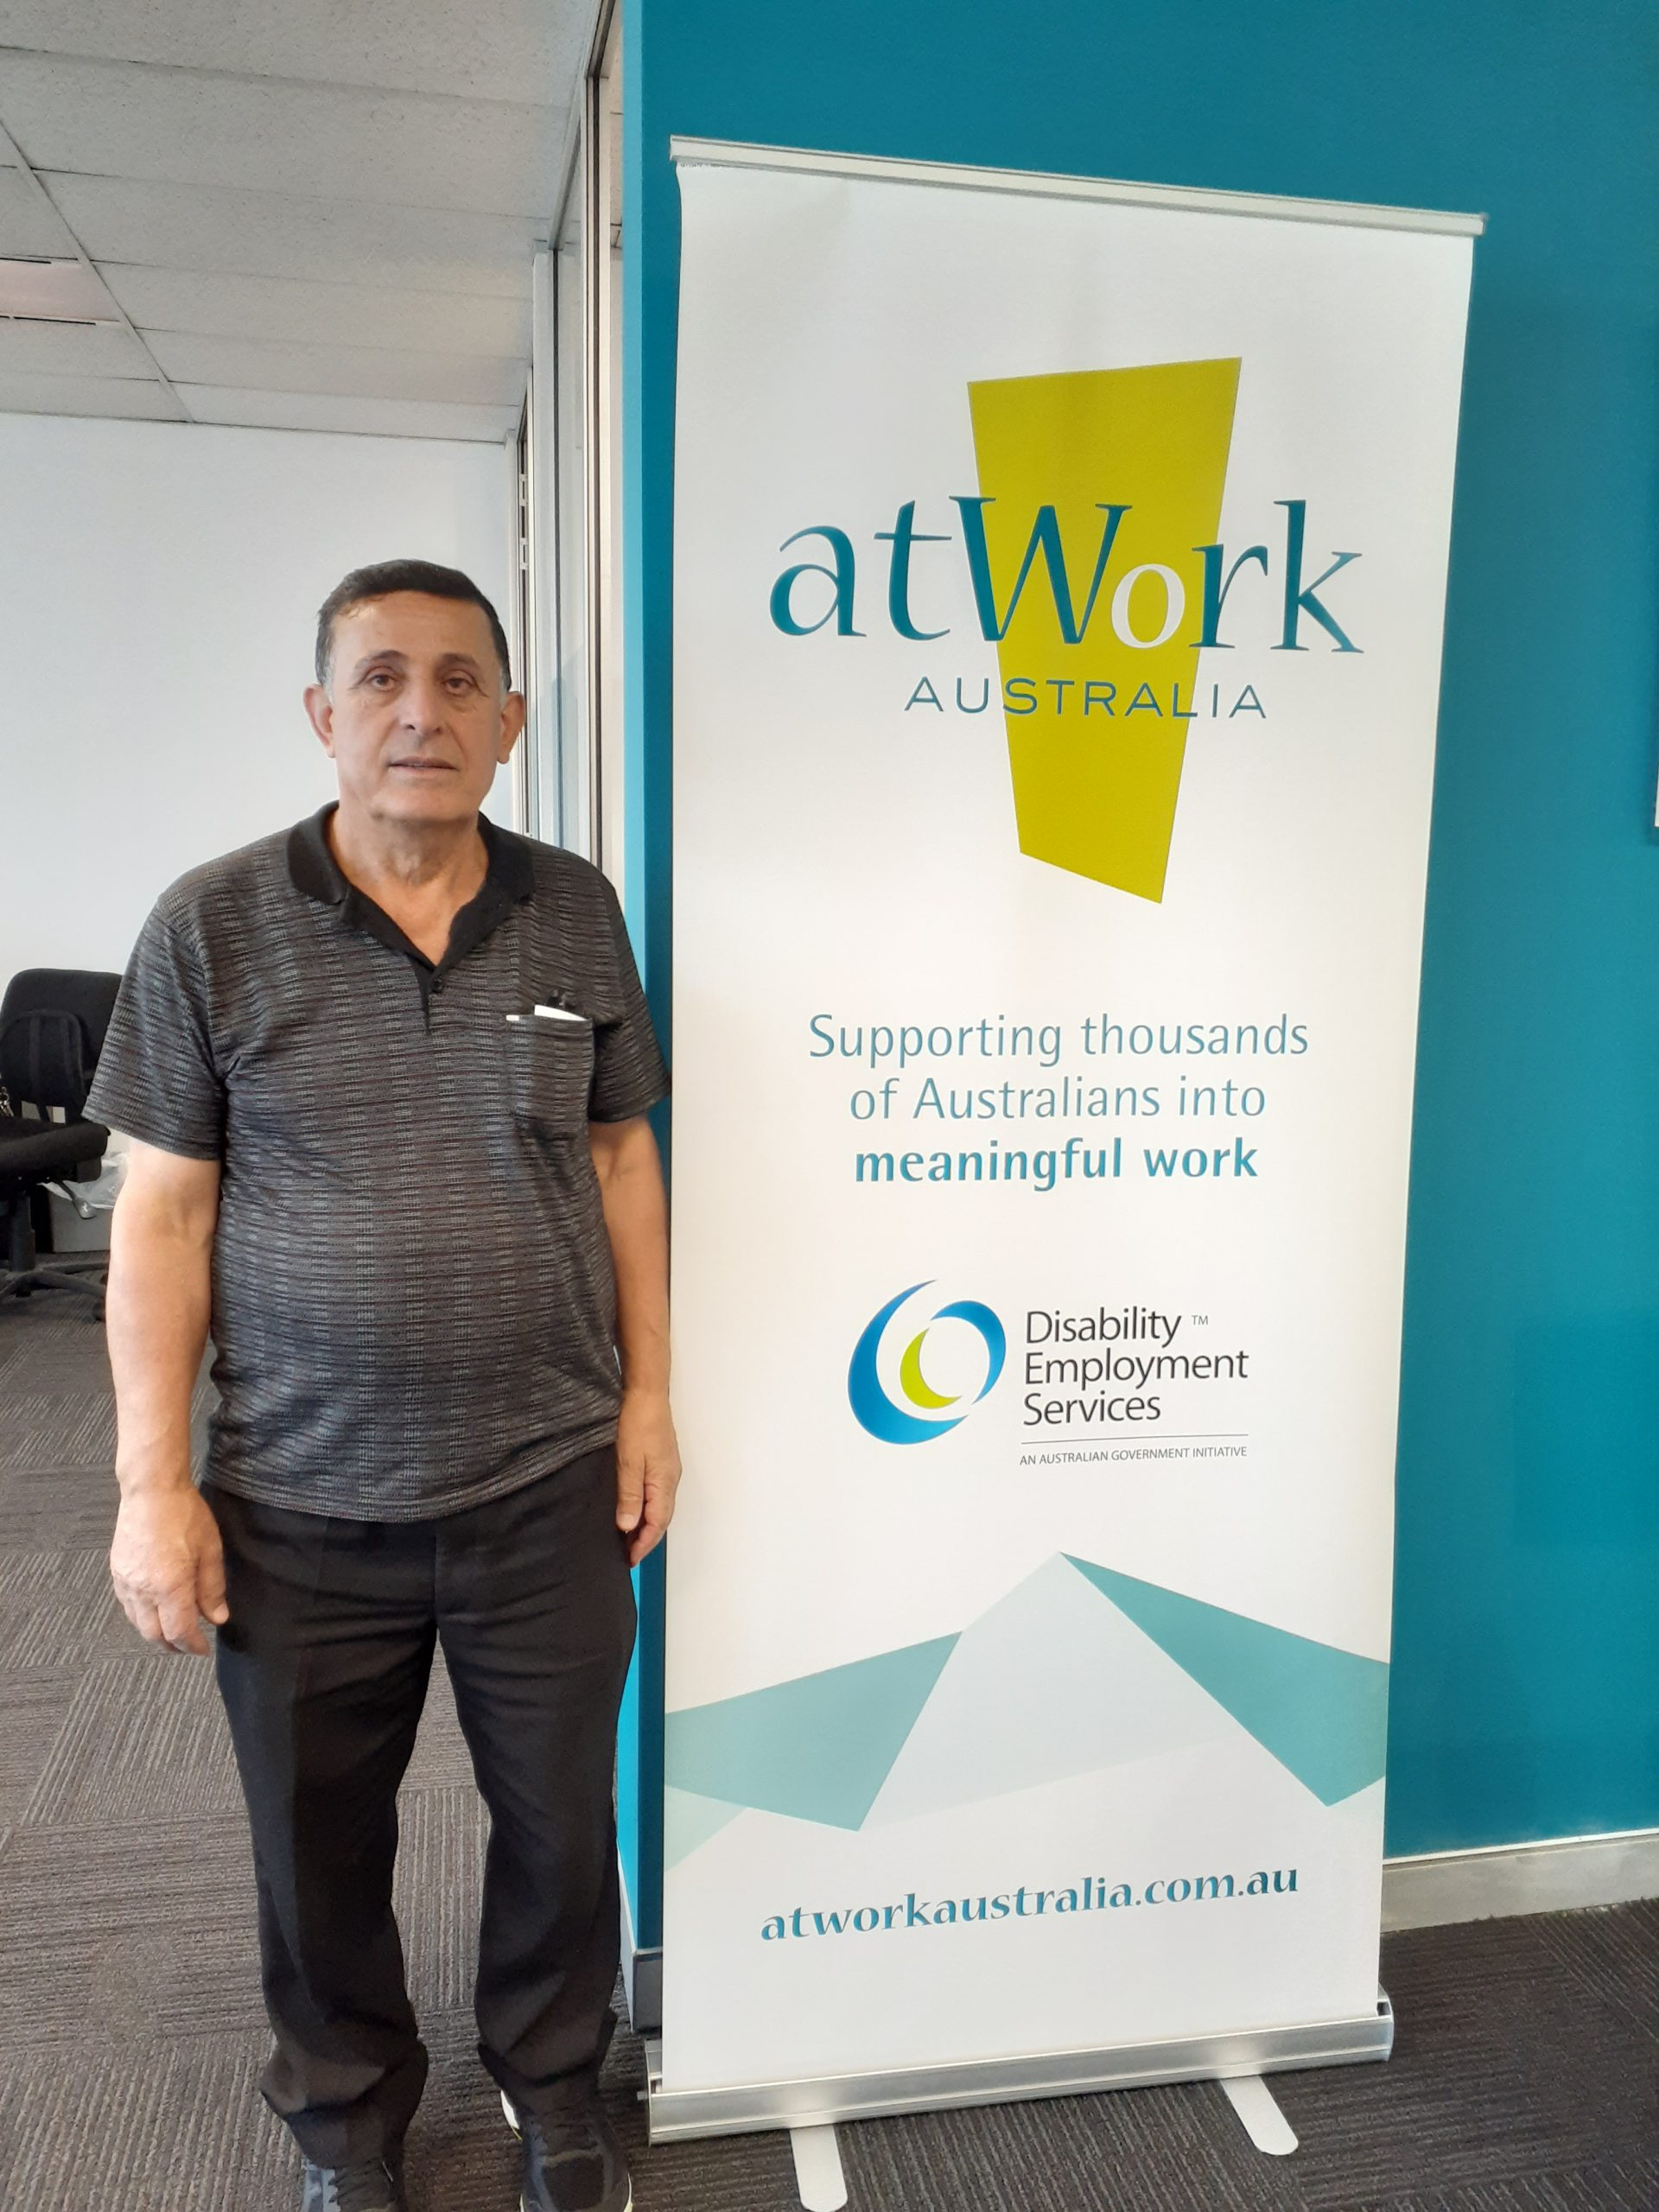 Ali sees a light at the end of the tunnel through employment